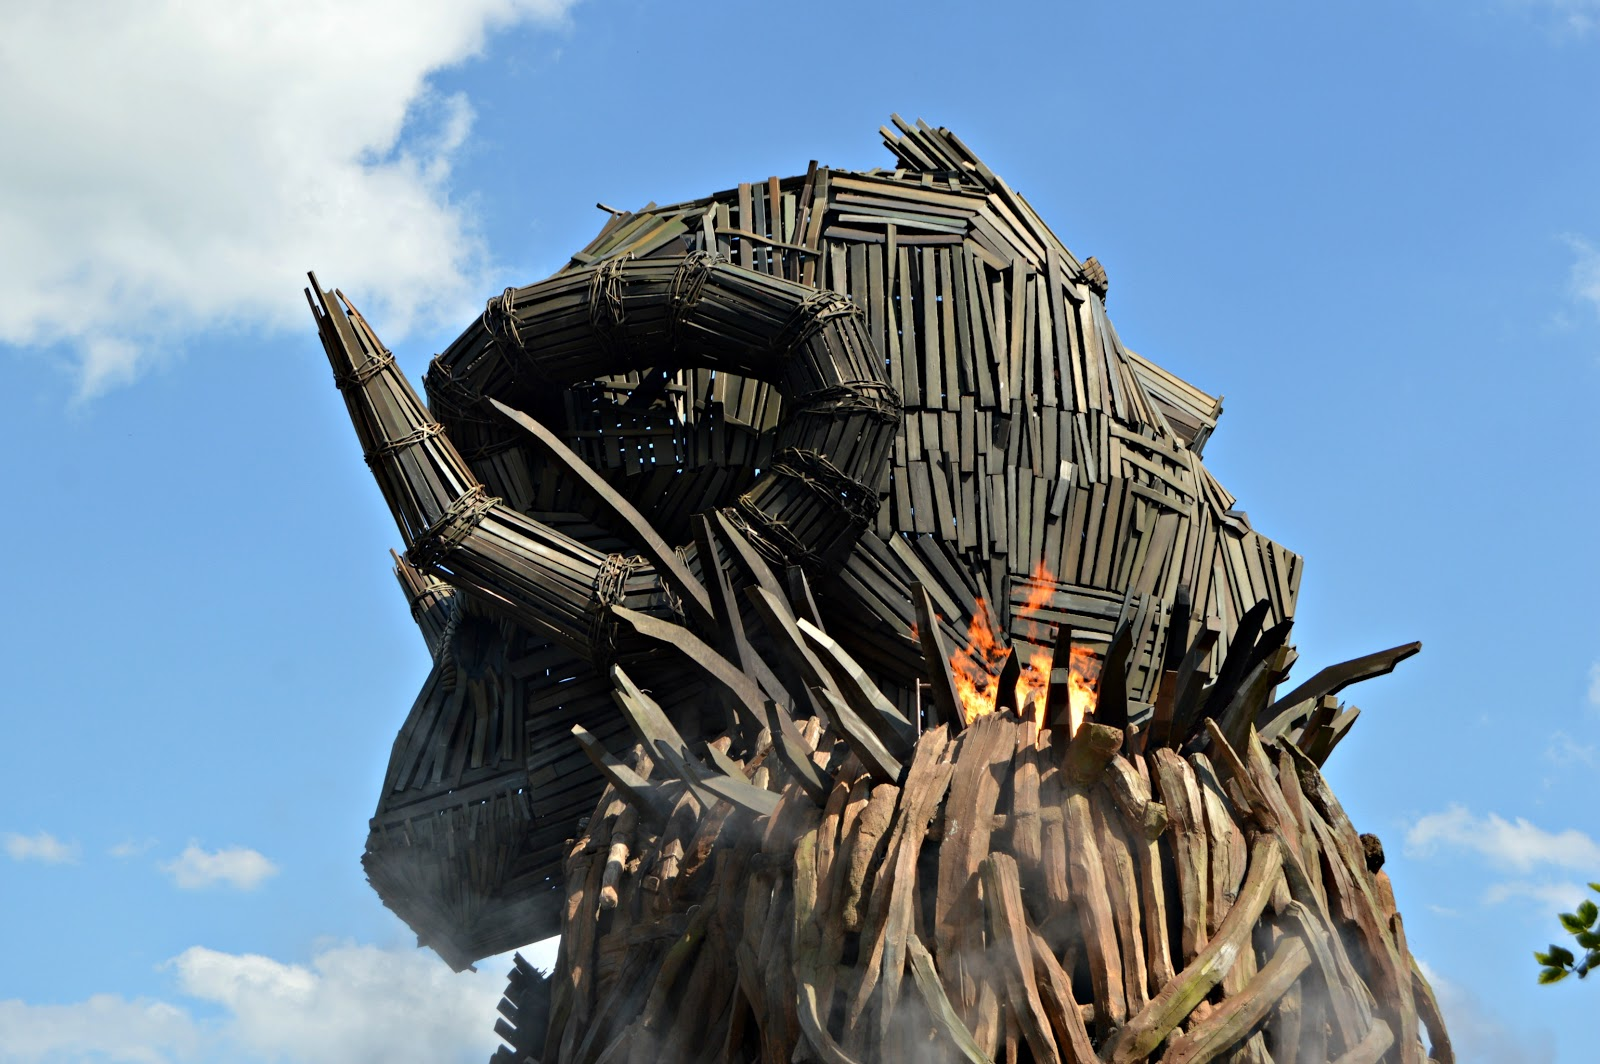 The Wicker Man Ride At Alton Towers